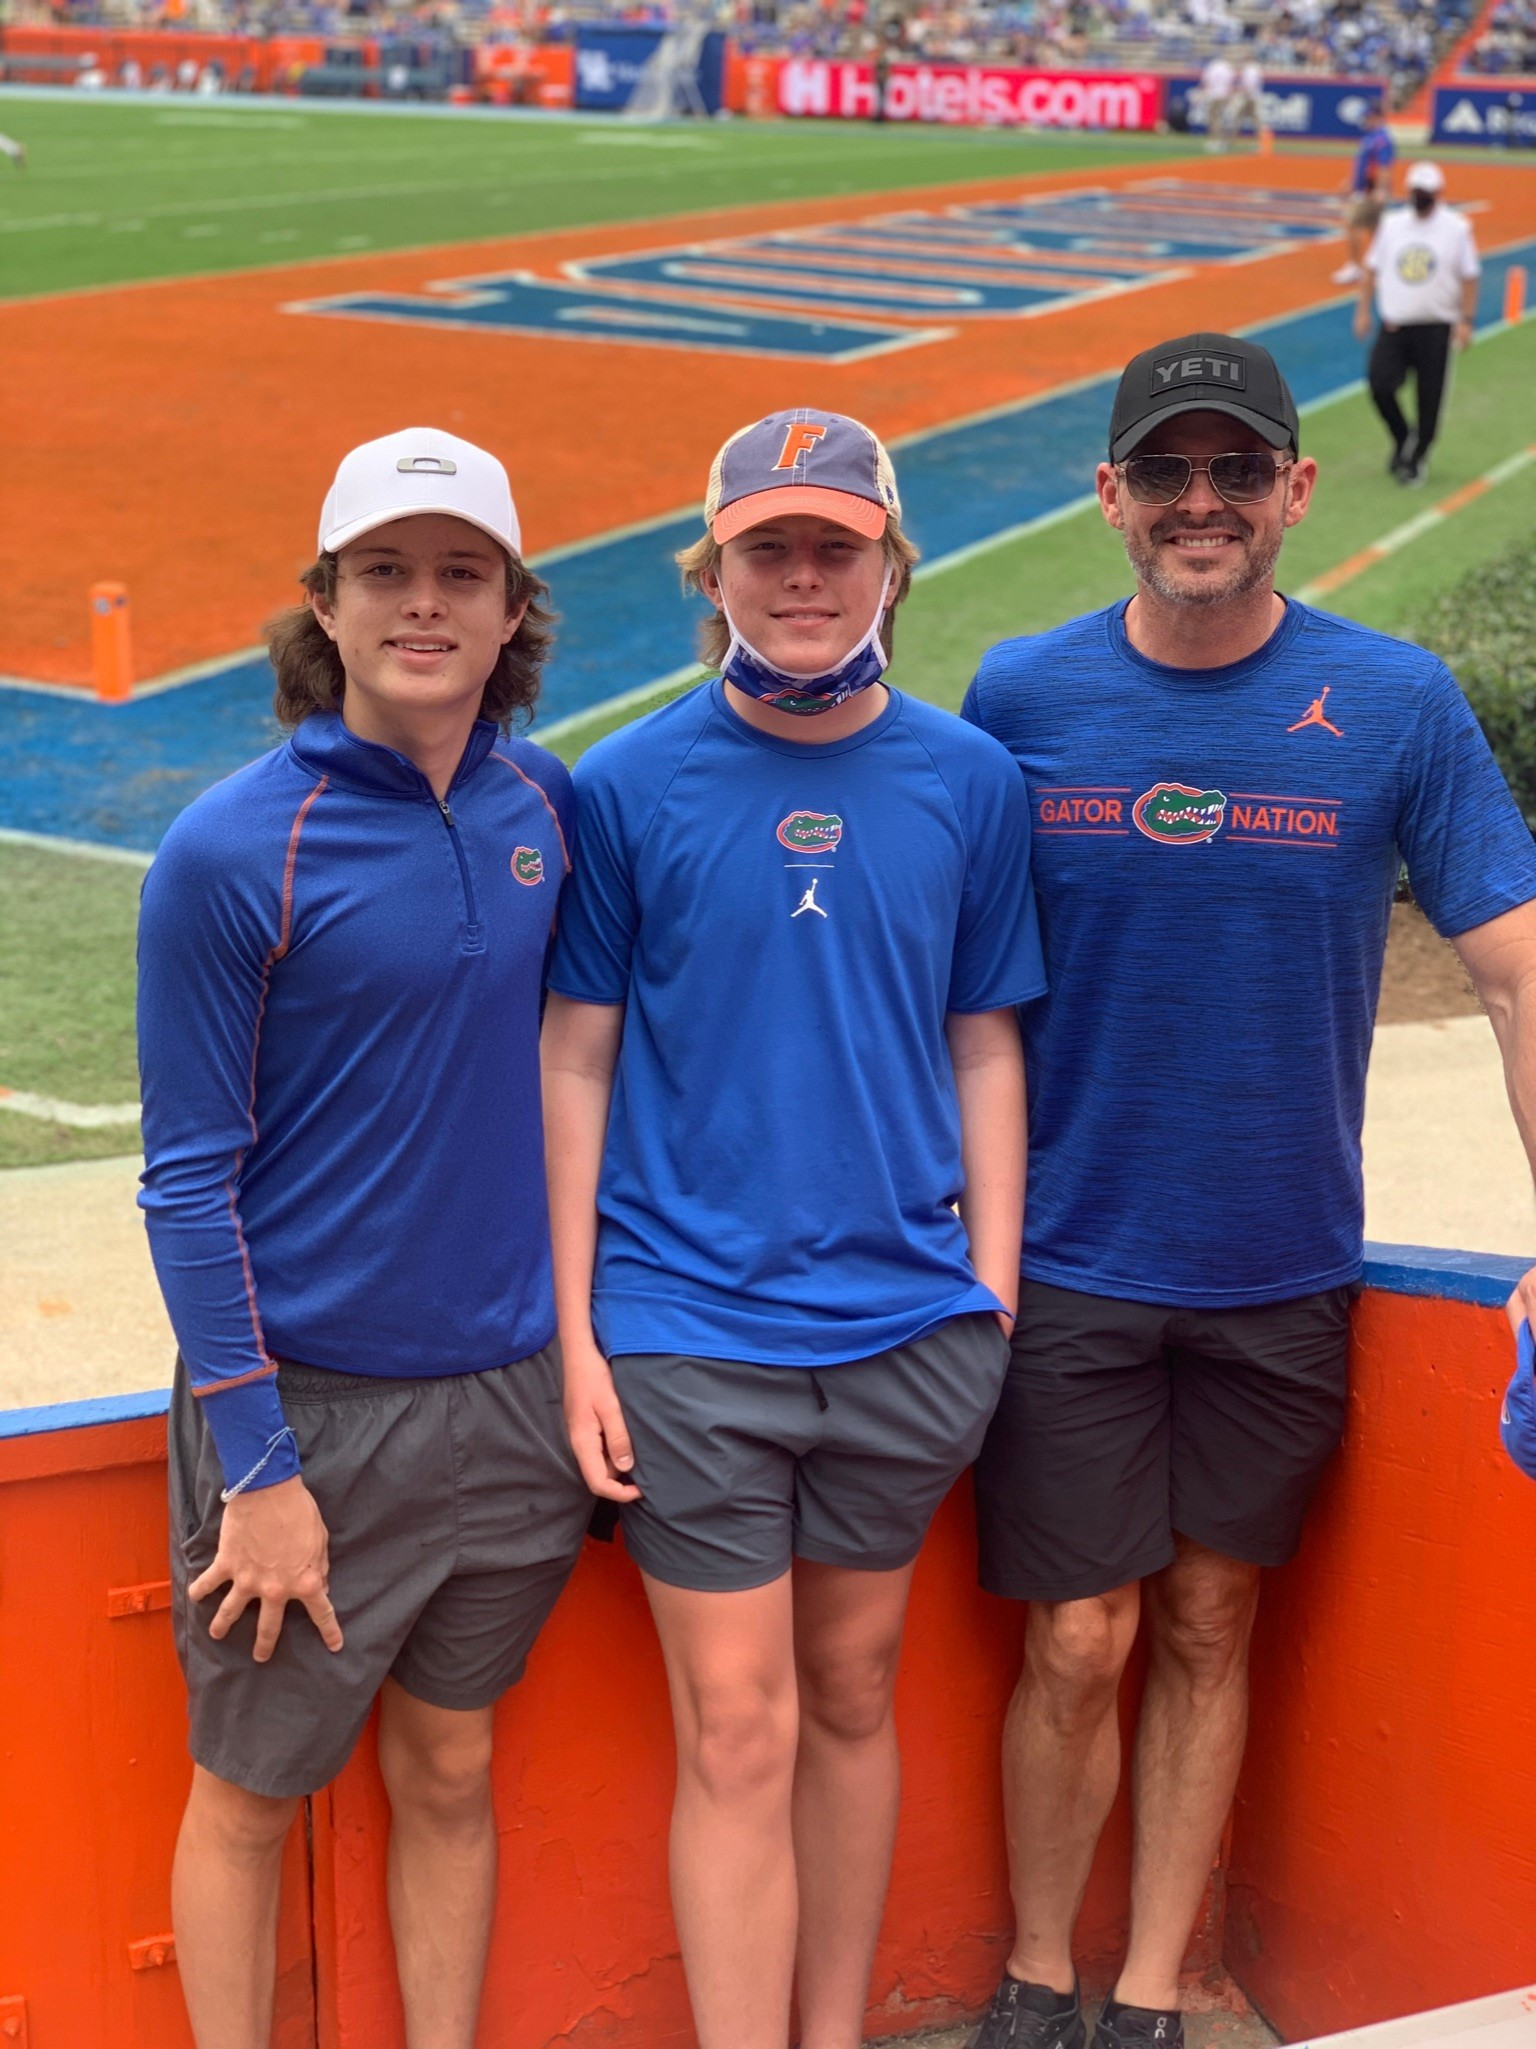 aaron with two sons at UF